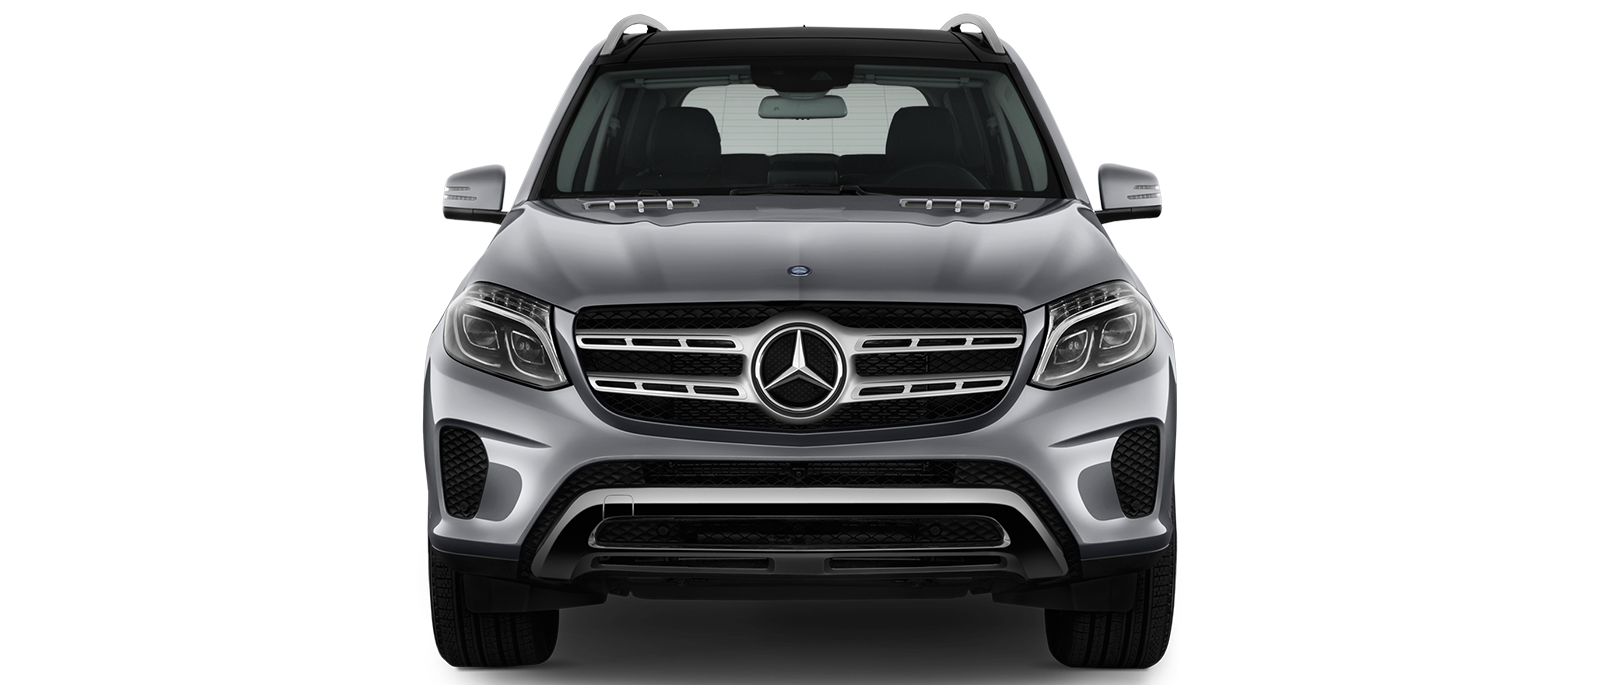 mercedes benz gls450 car rental exotic car collection by